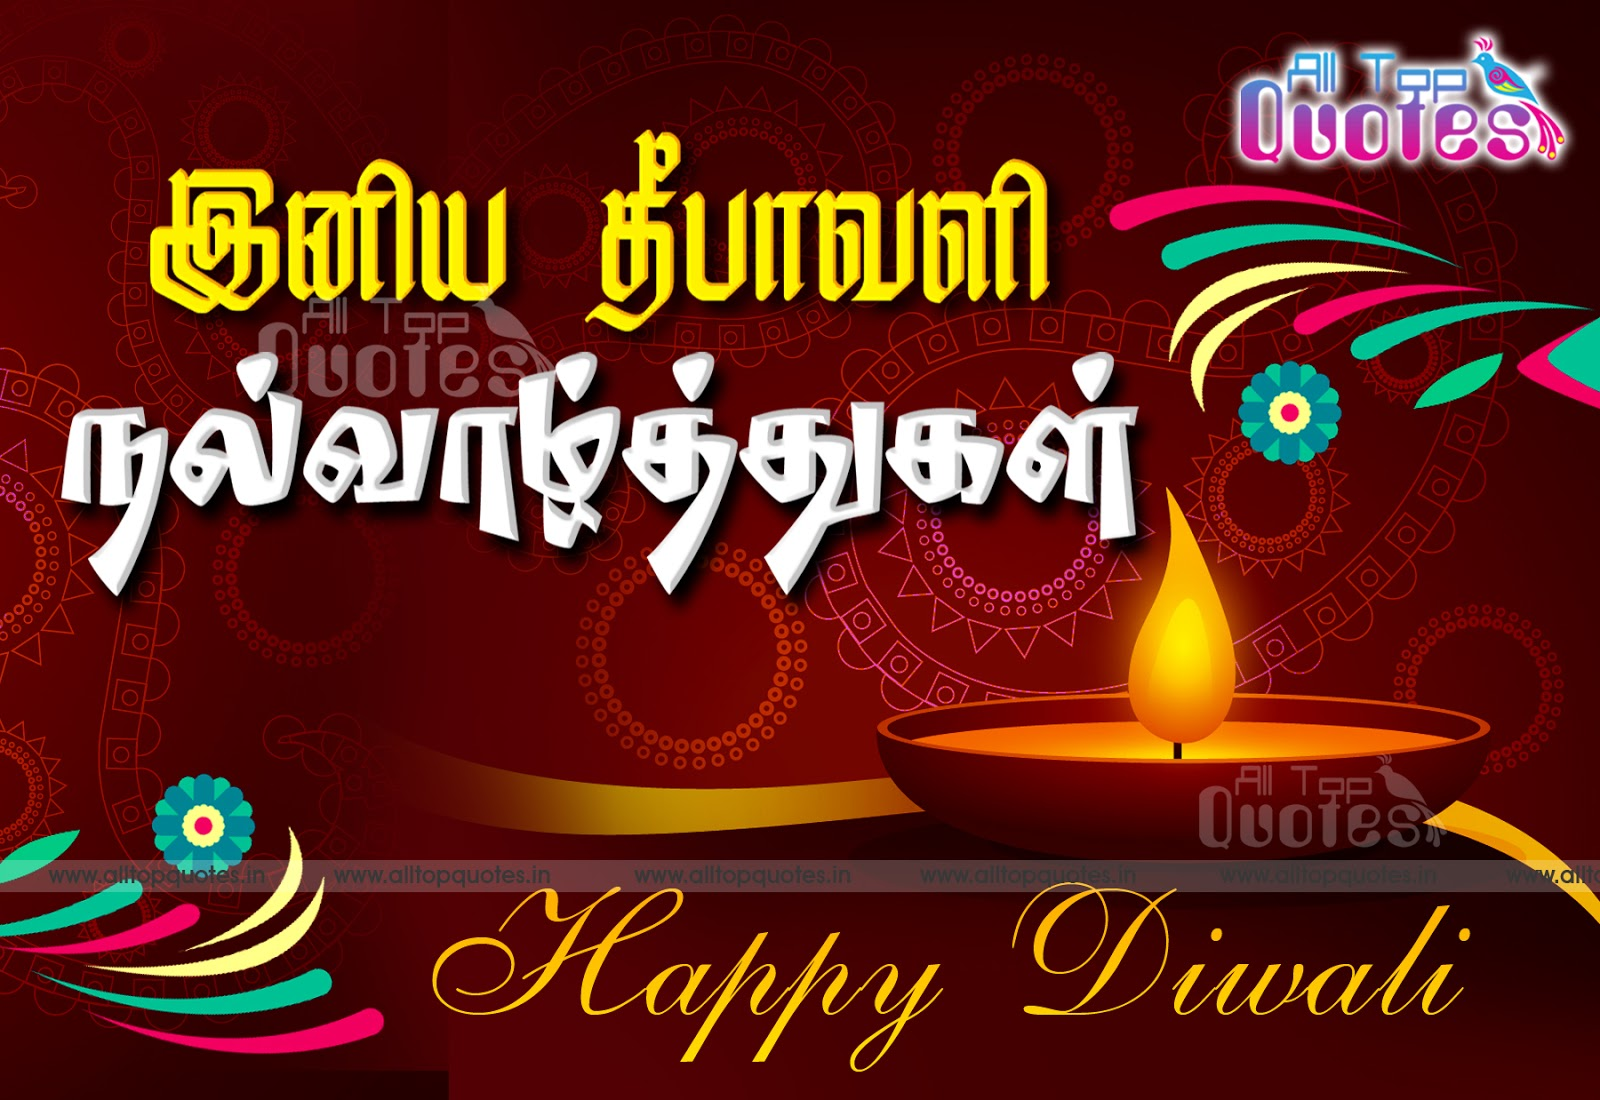 Happy Diwali Images Photos With Quotes Wishes Happy Diwali